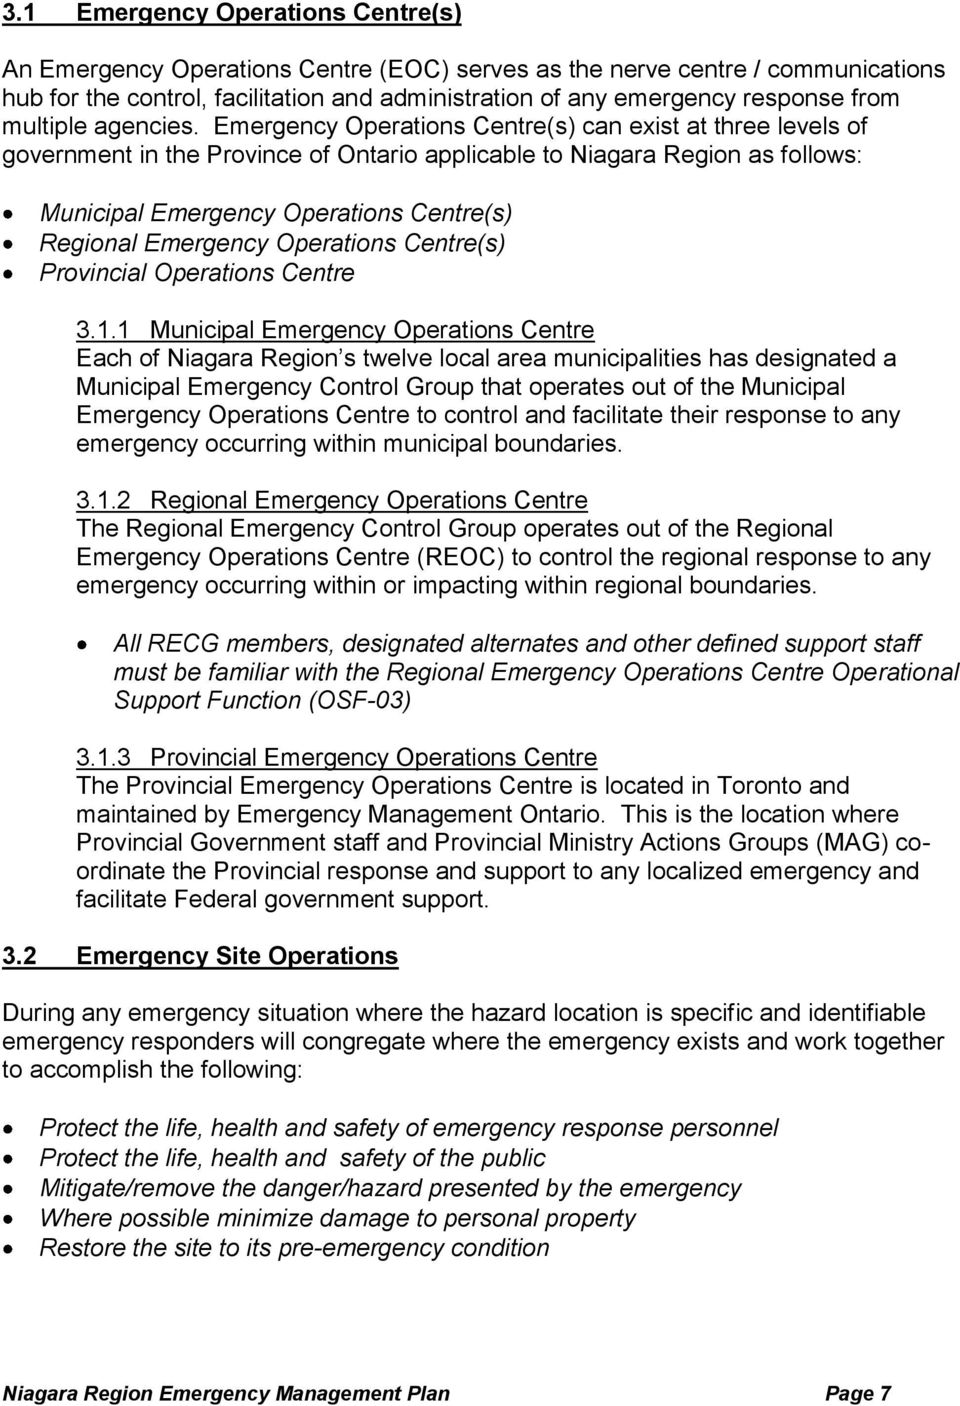 Emergency Operations Centre(s) can exist at three levels of government in the Province of Ontario applicable to Niagara Region as follows: Municipal Emergency Operations Centre(s) Regional Emergency